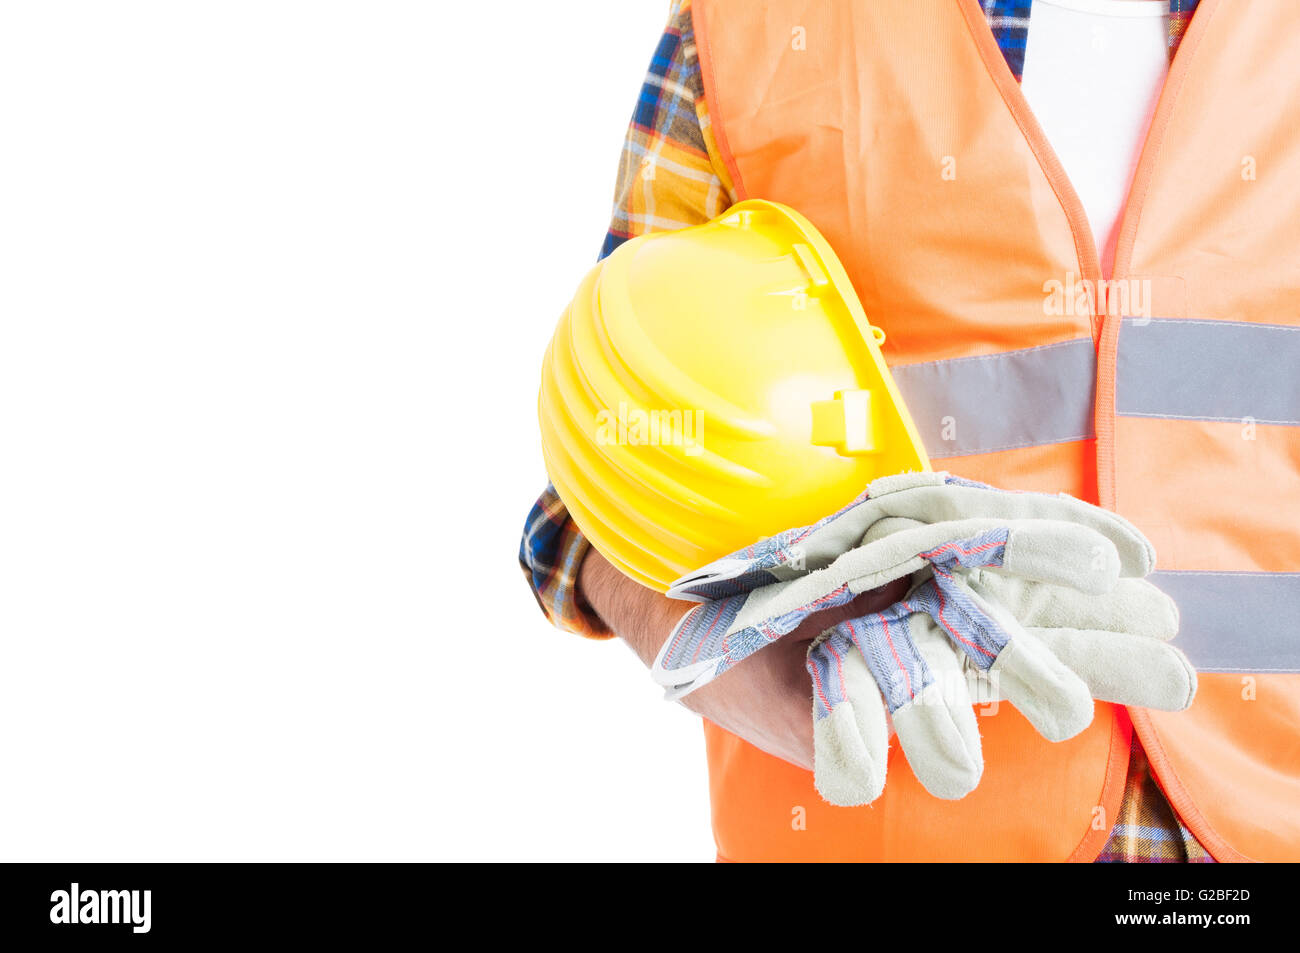 Concept of secure equipment with helmet, reflective vest and gloves in close-up isolated on white - Stock Image